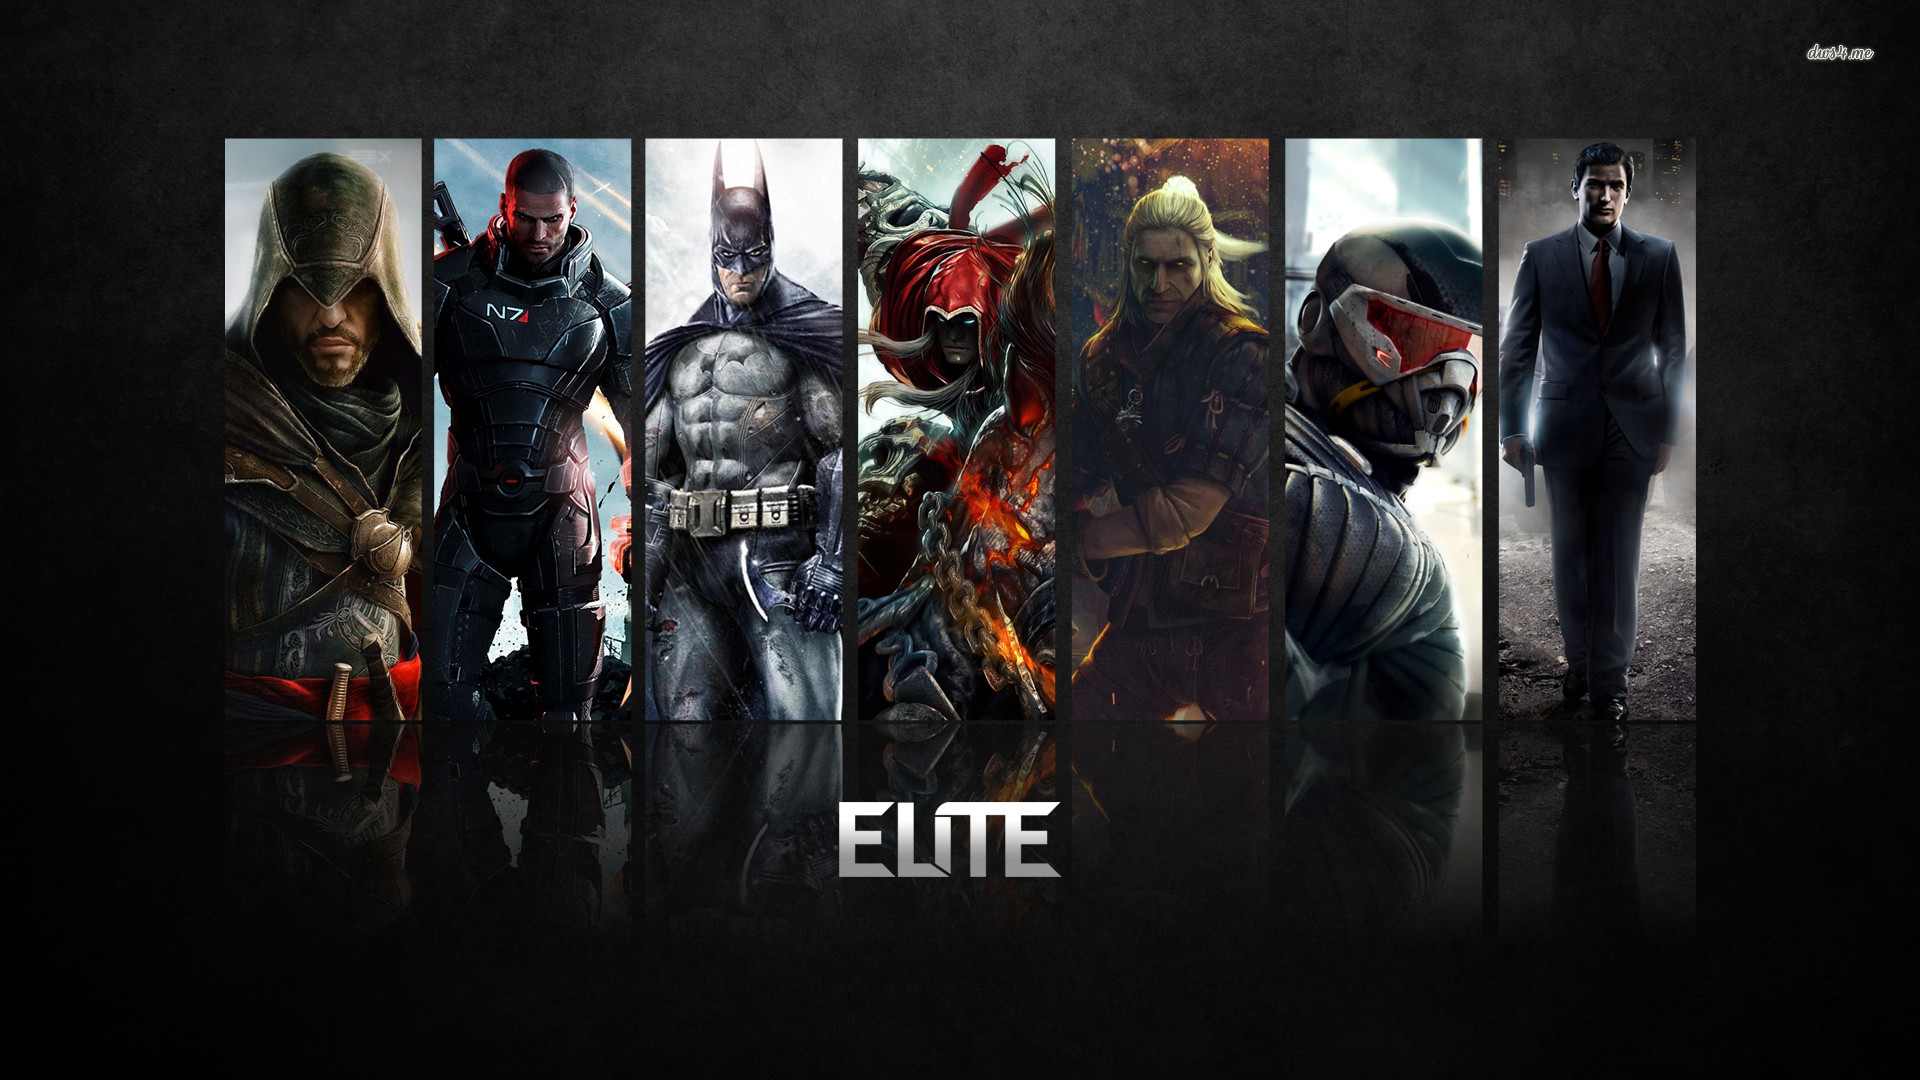 Elite video game characters wallpaper – Game wallpapers – #48790